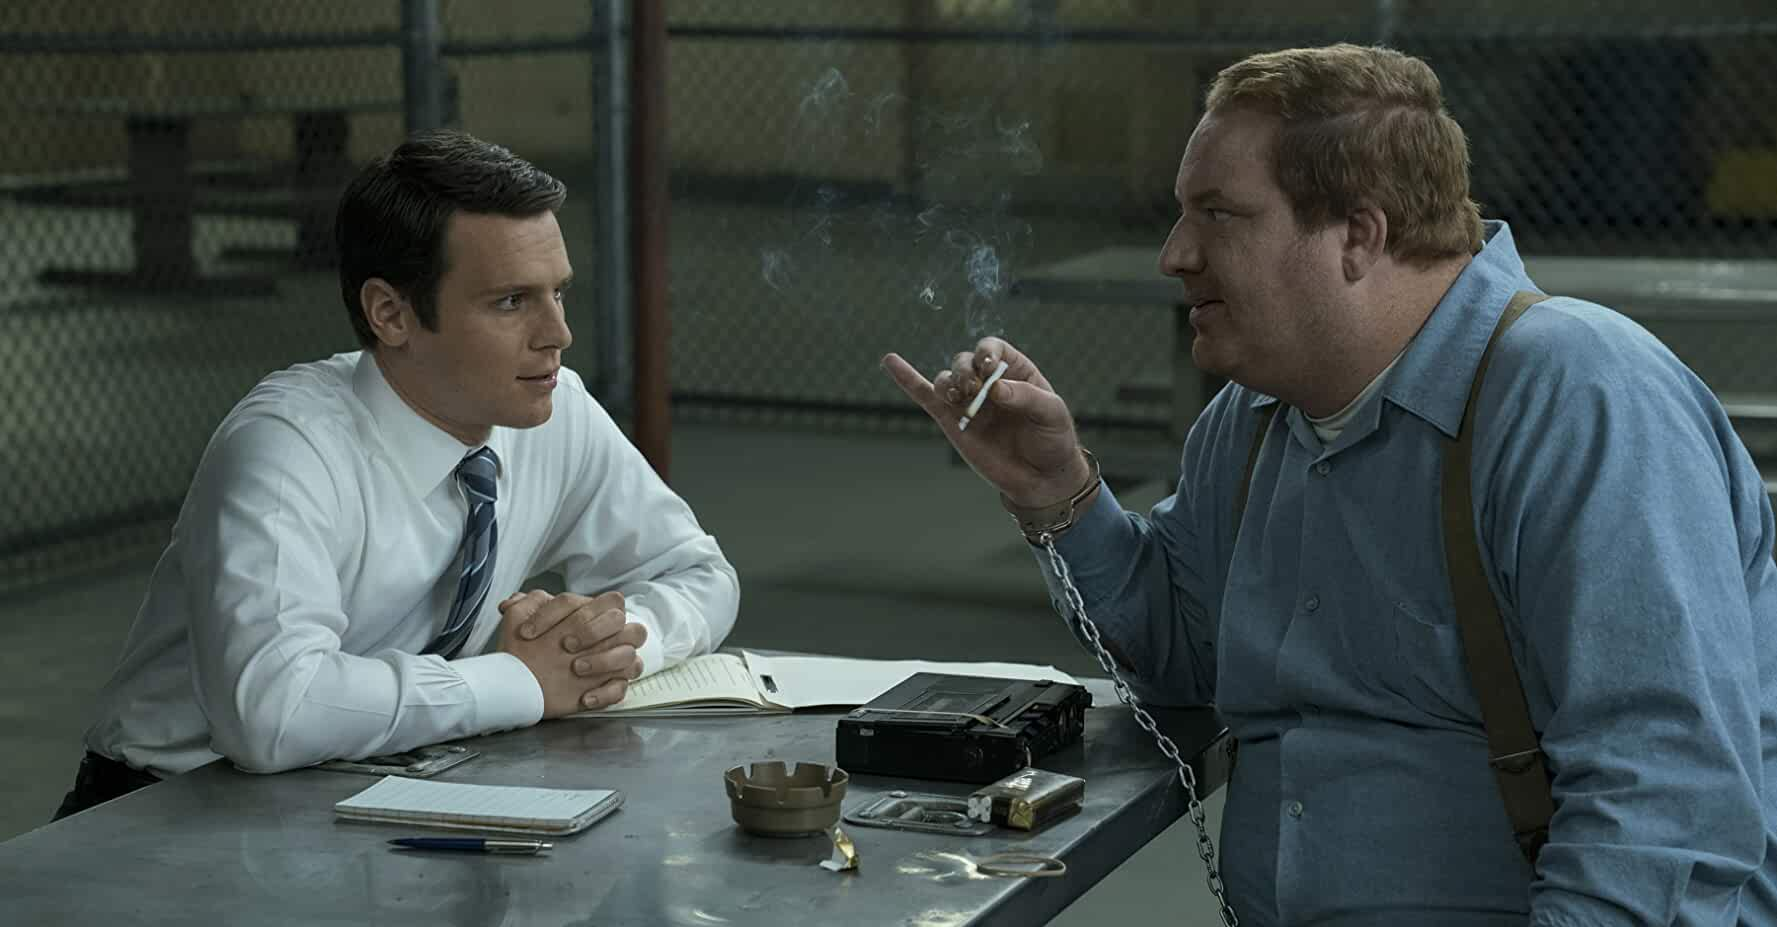 Happy Anderson and Jonathan Groff in Mindhunter (2017)